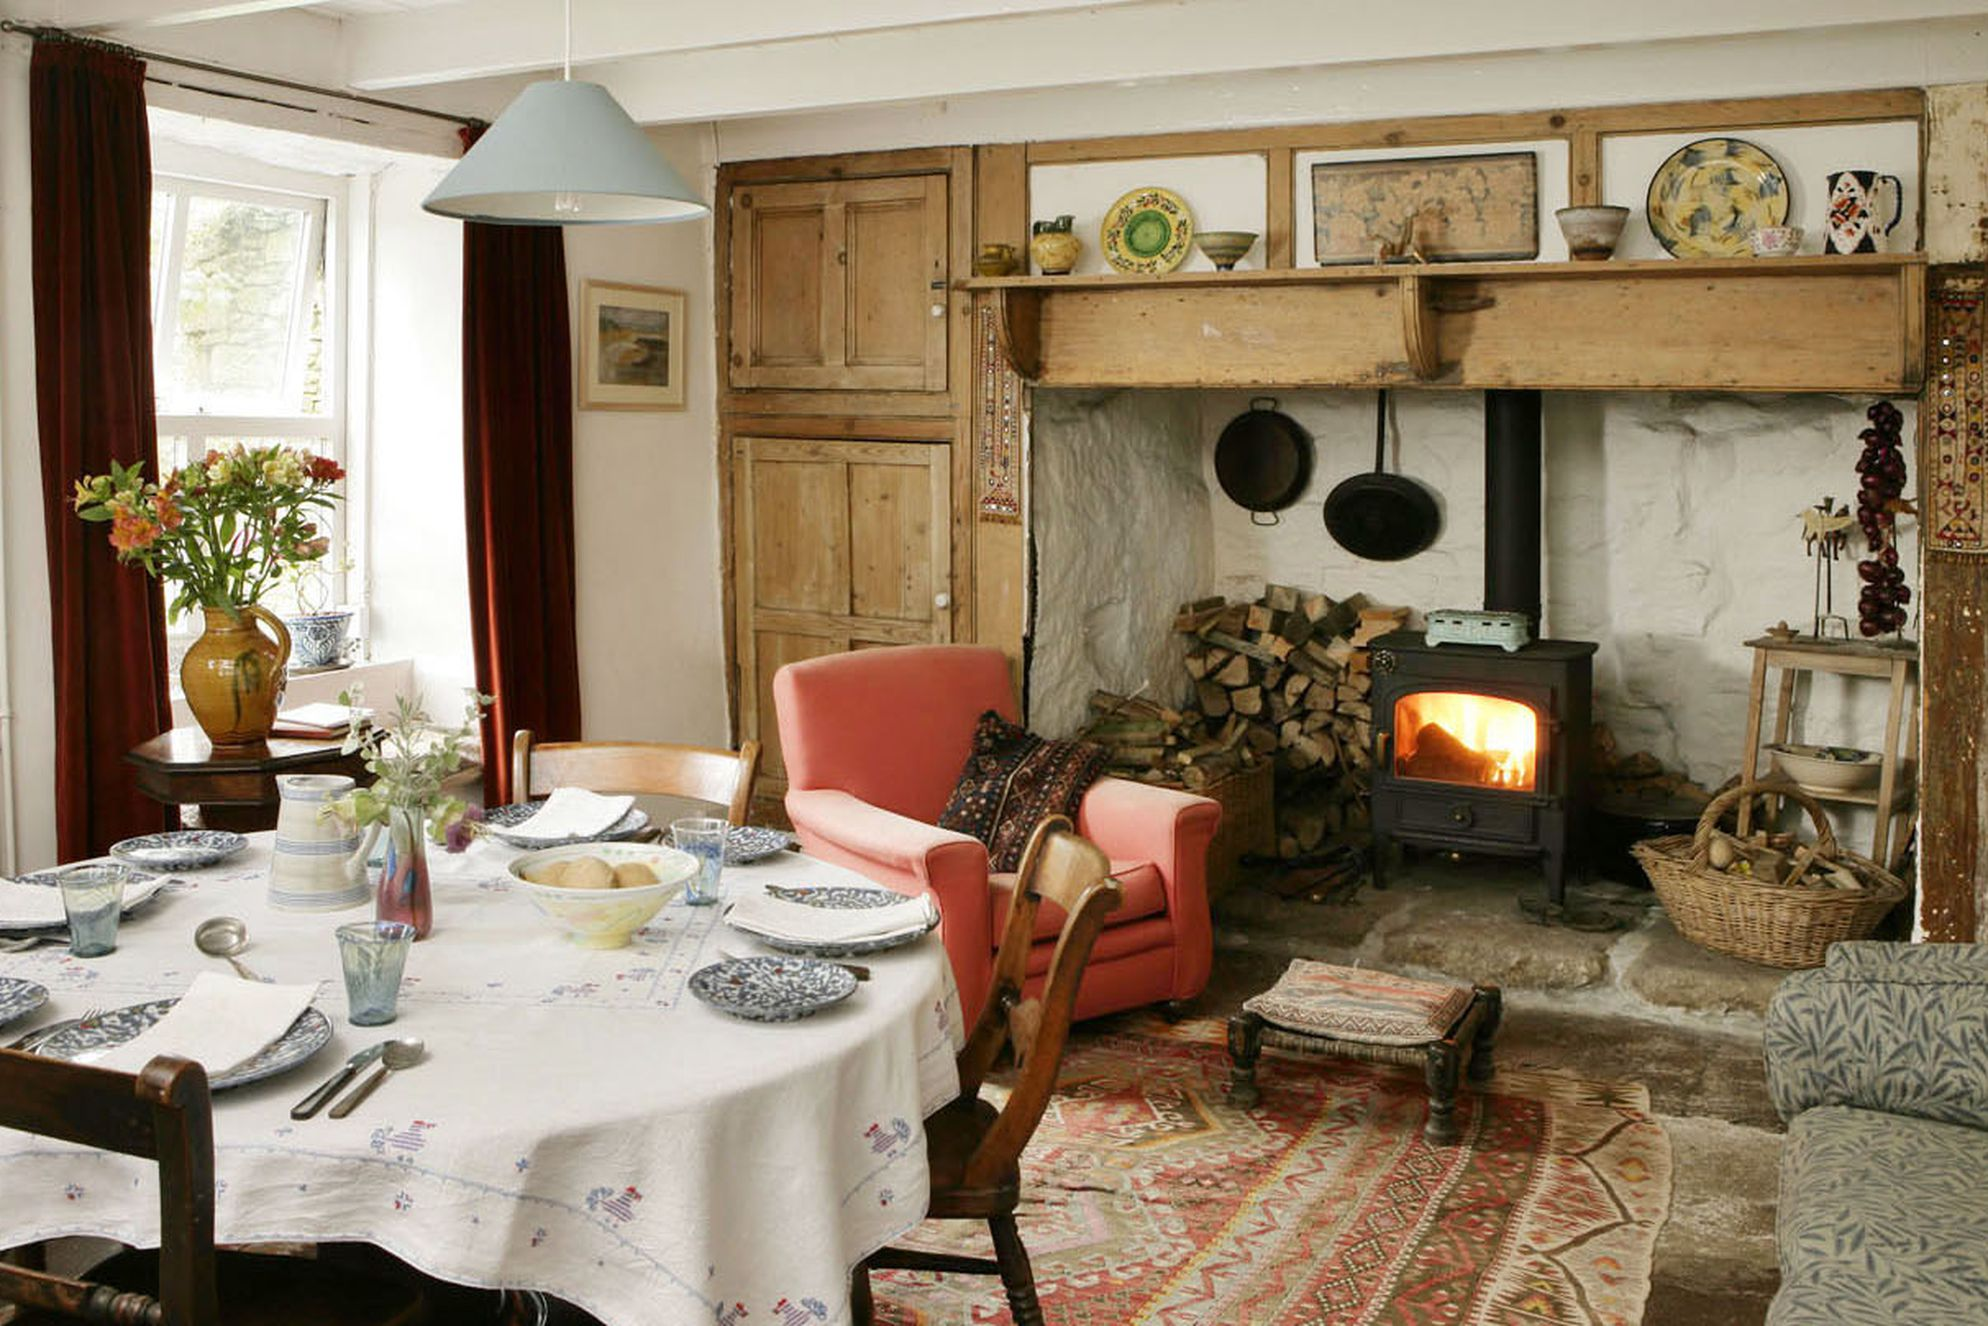 Living rrom with made up table and cosy seat in front of wood-burner